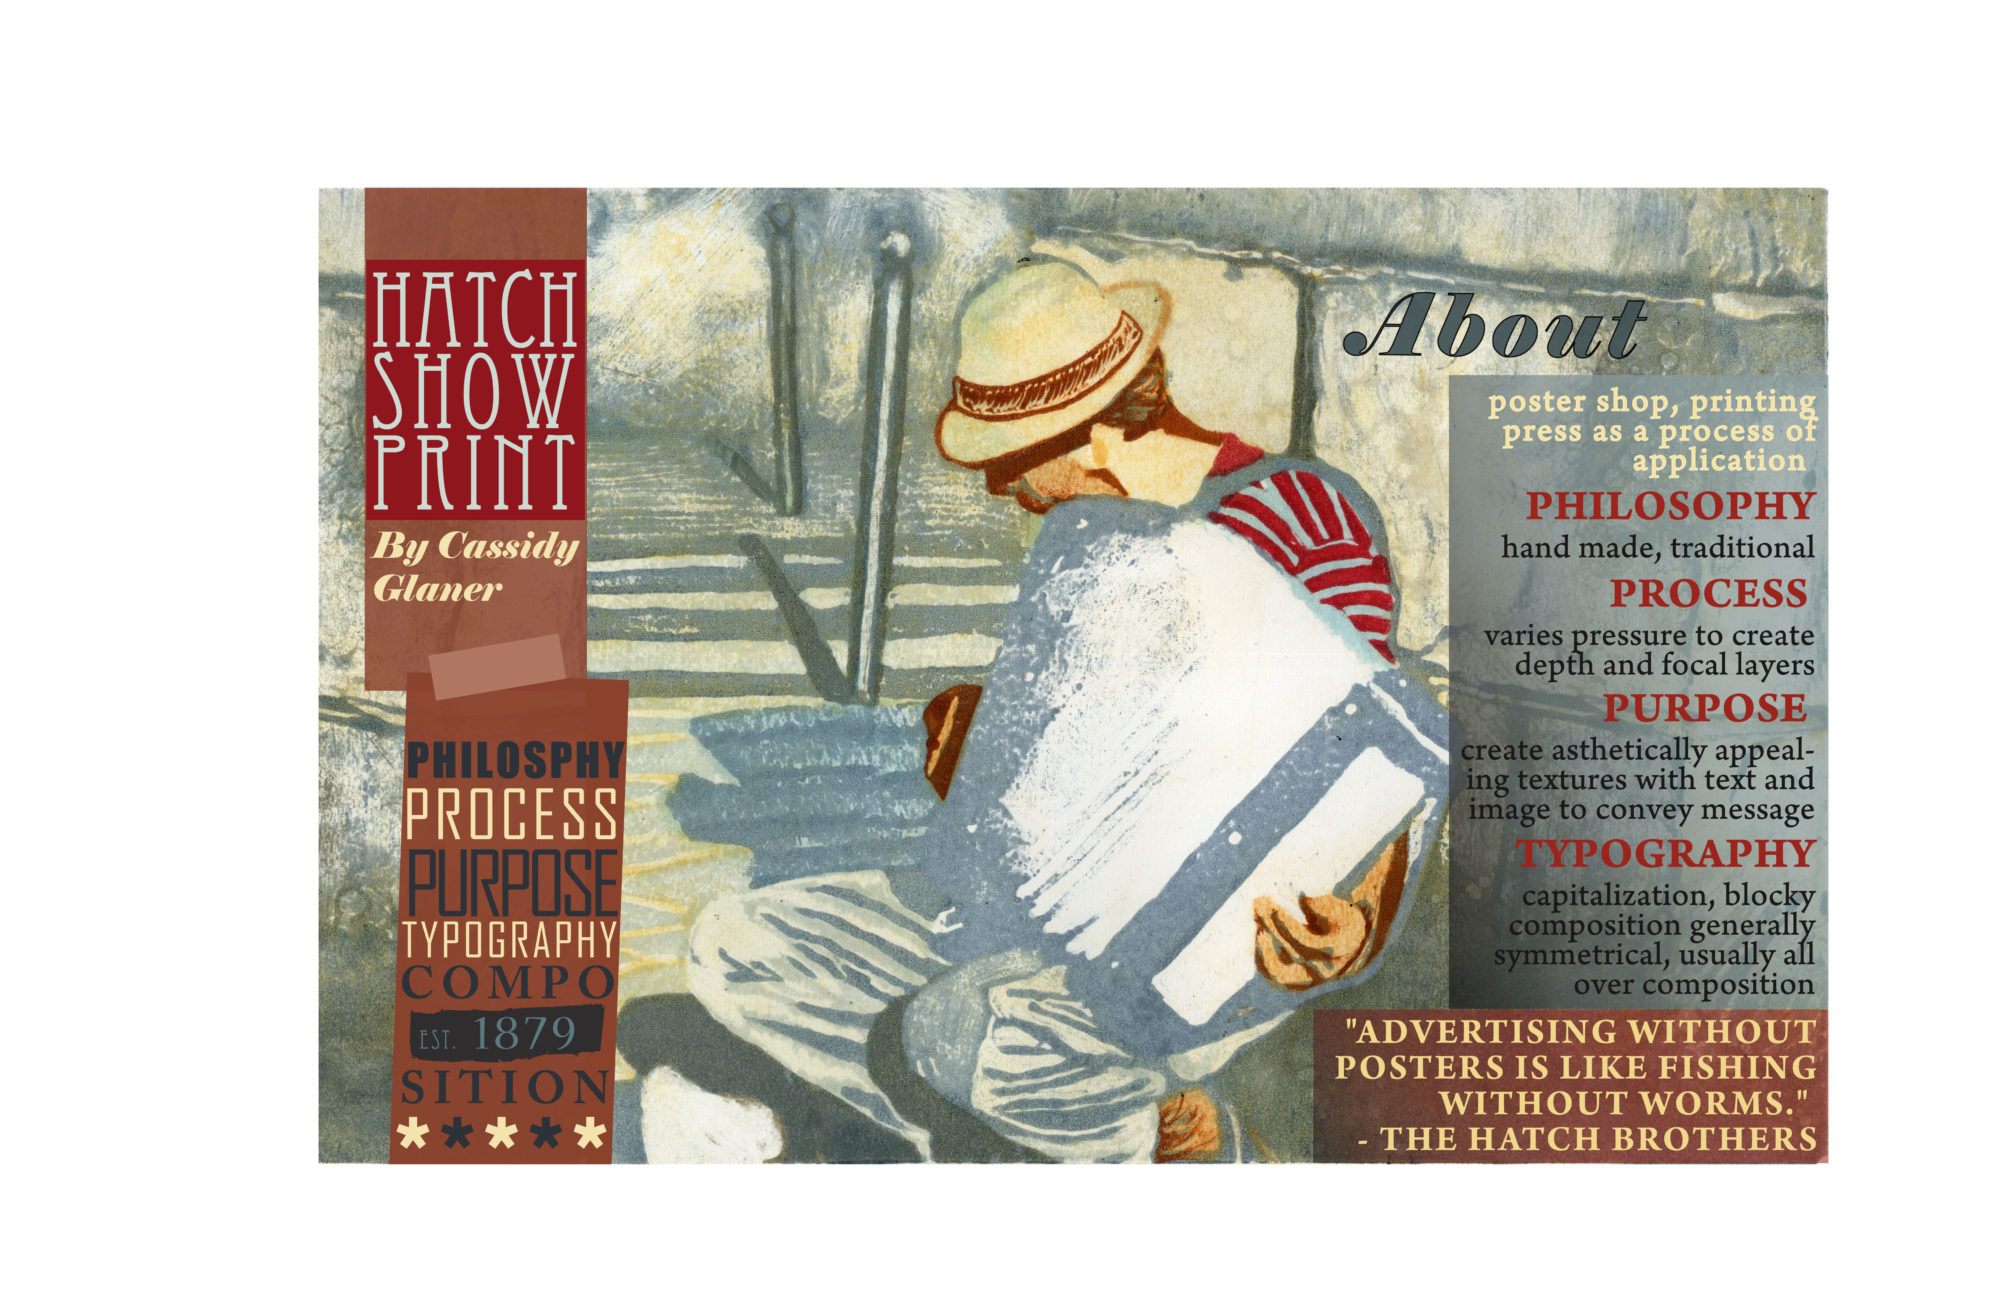 Hatch Show Print, monoprint, monotype, printmaking, graphic design, advertising, poster, media